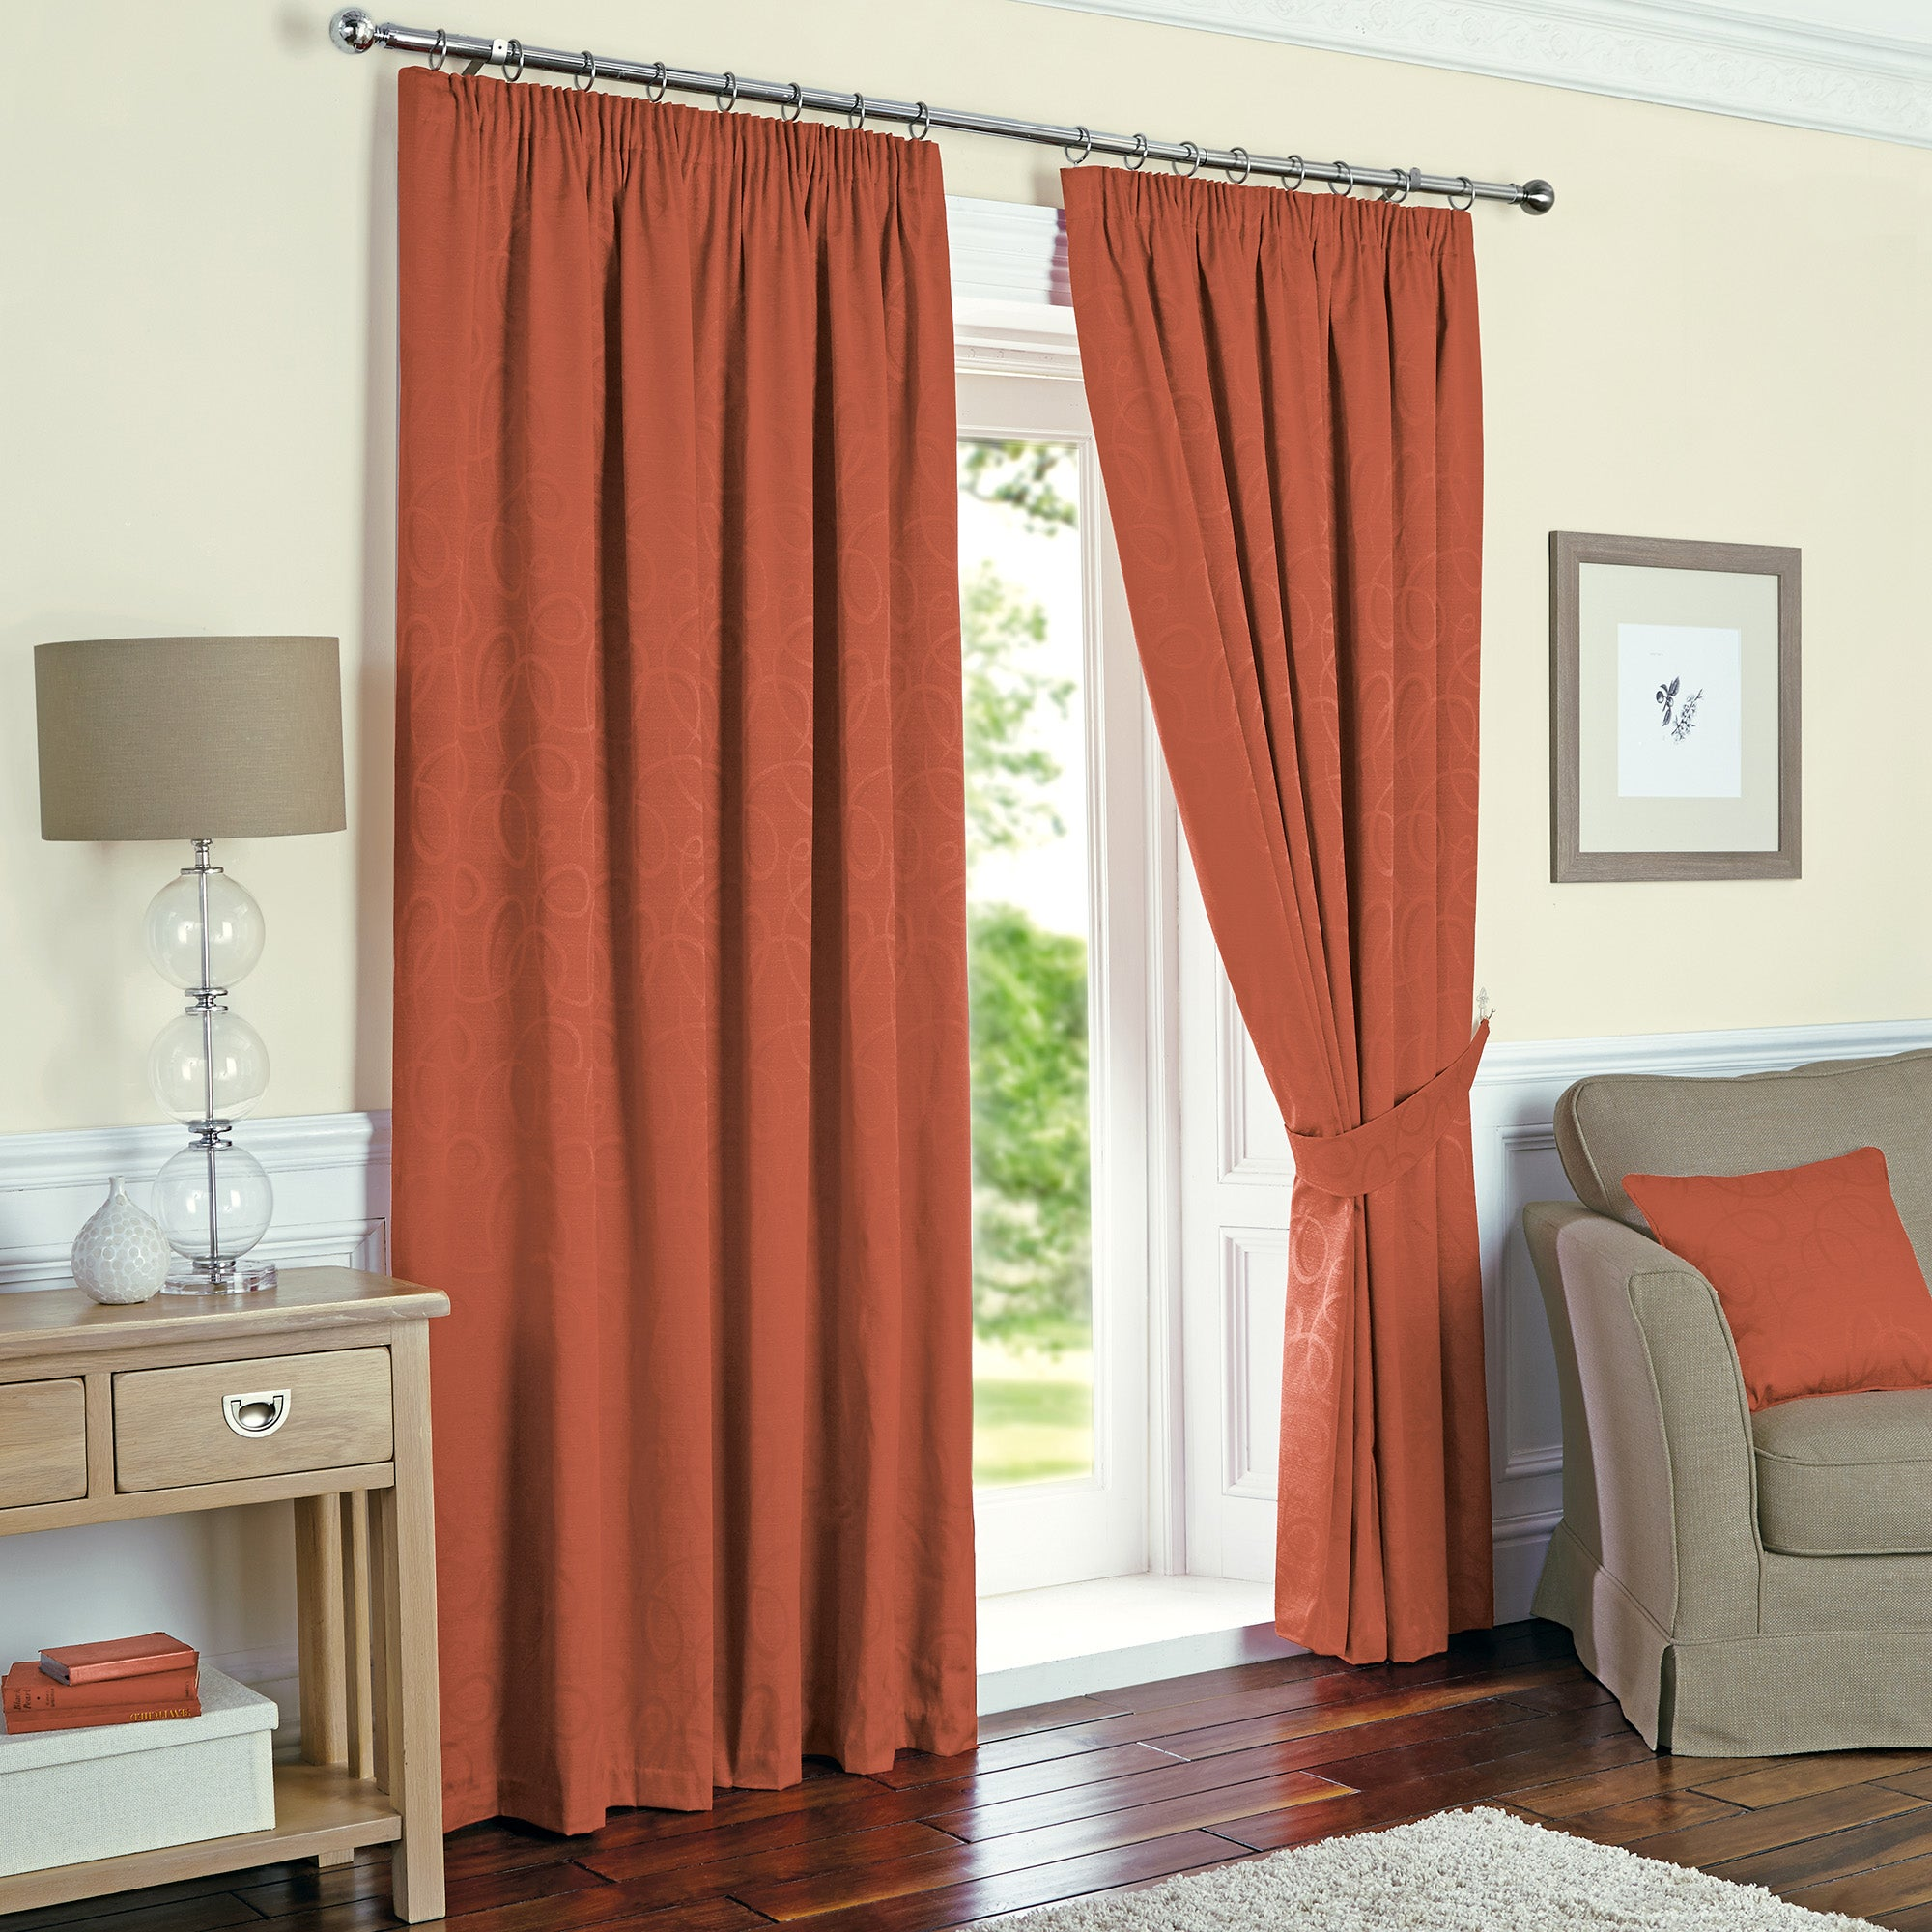 terracotta toledo thermal pencil pleat curtains dunelm. Black Bedroom Furniture Sets. Home Design Ideas